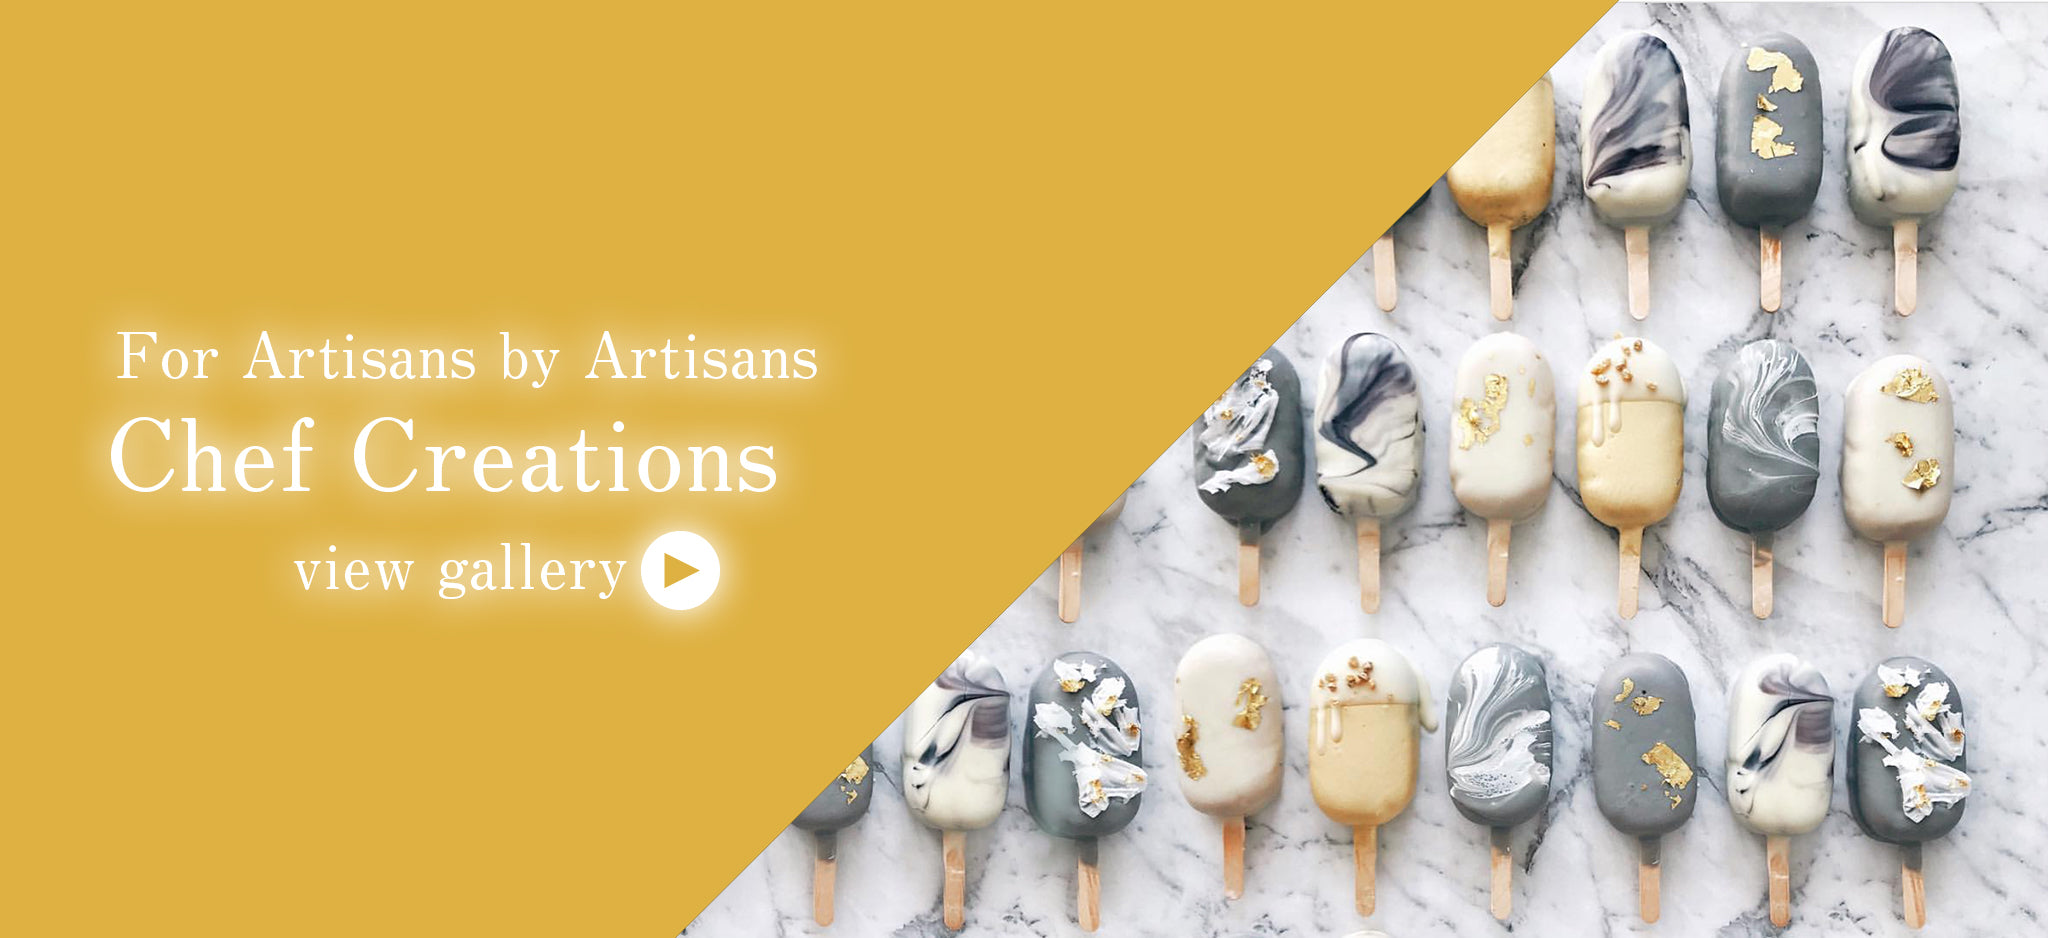 For Artisans By Artisans - Chef Creations - view gallery